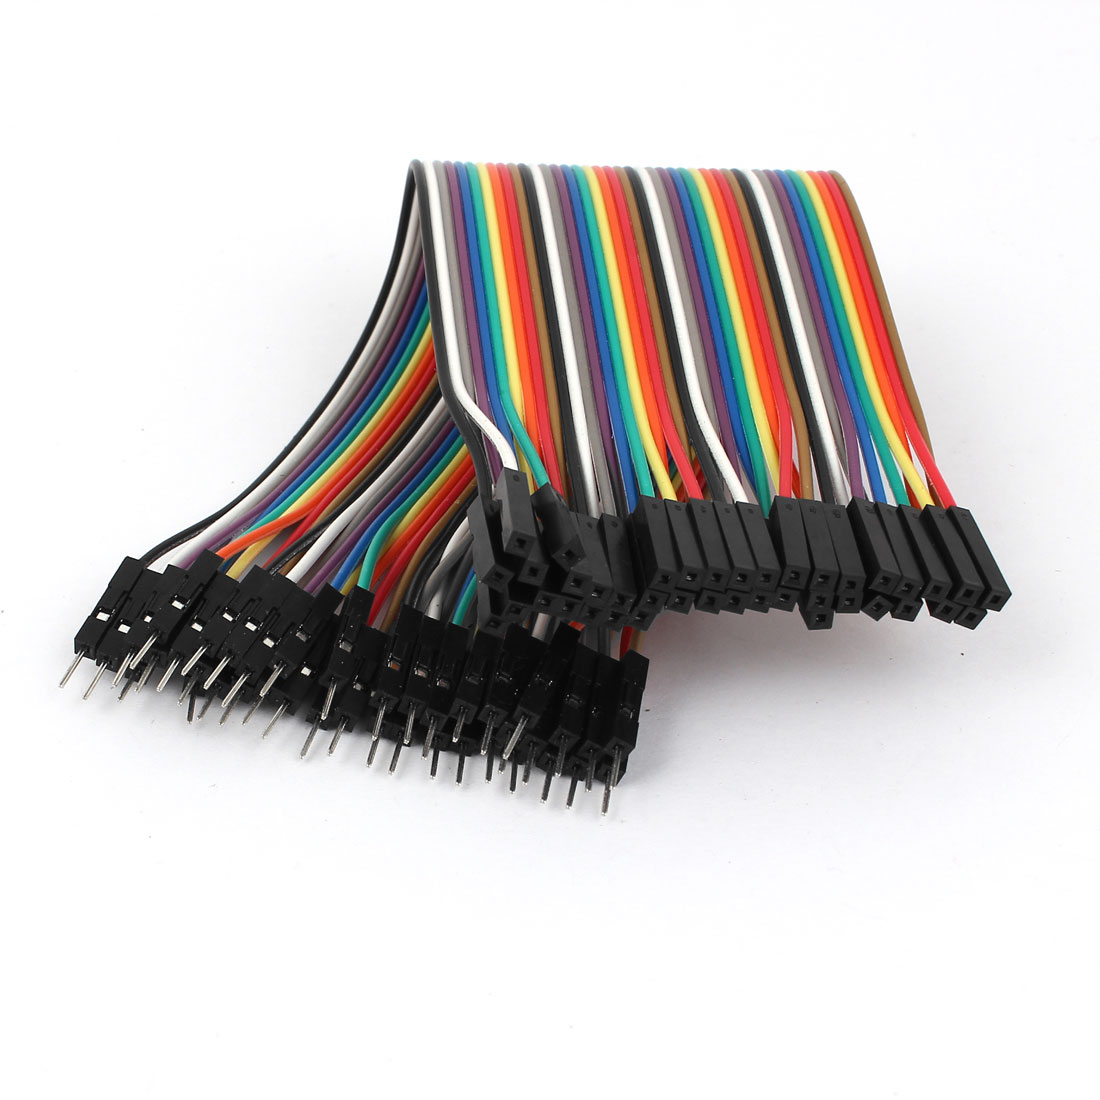 20cm 40pin Male to Female 2.54mm 1P-1P Jumper Wire Flat Cable